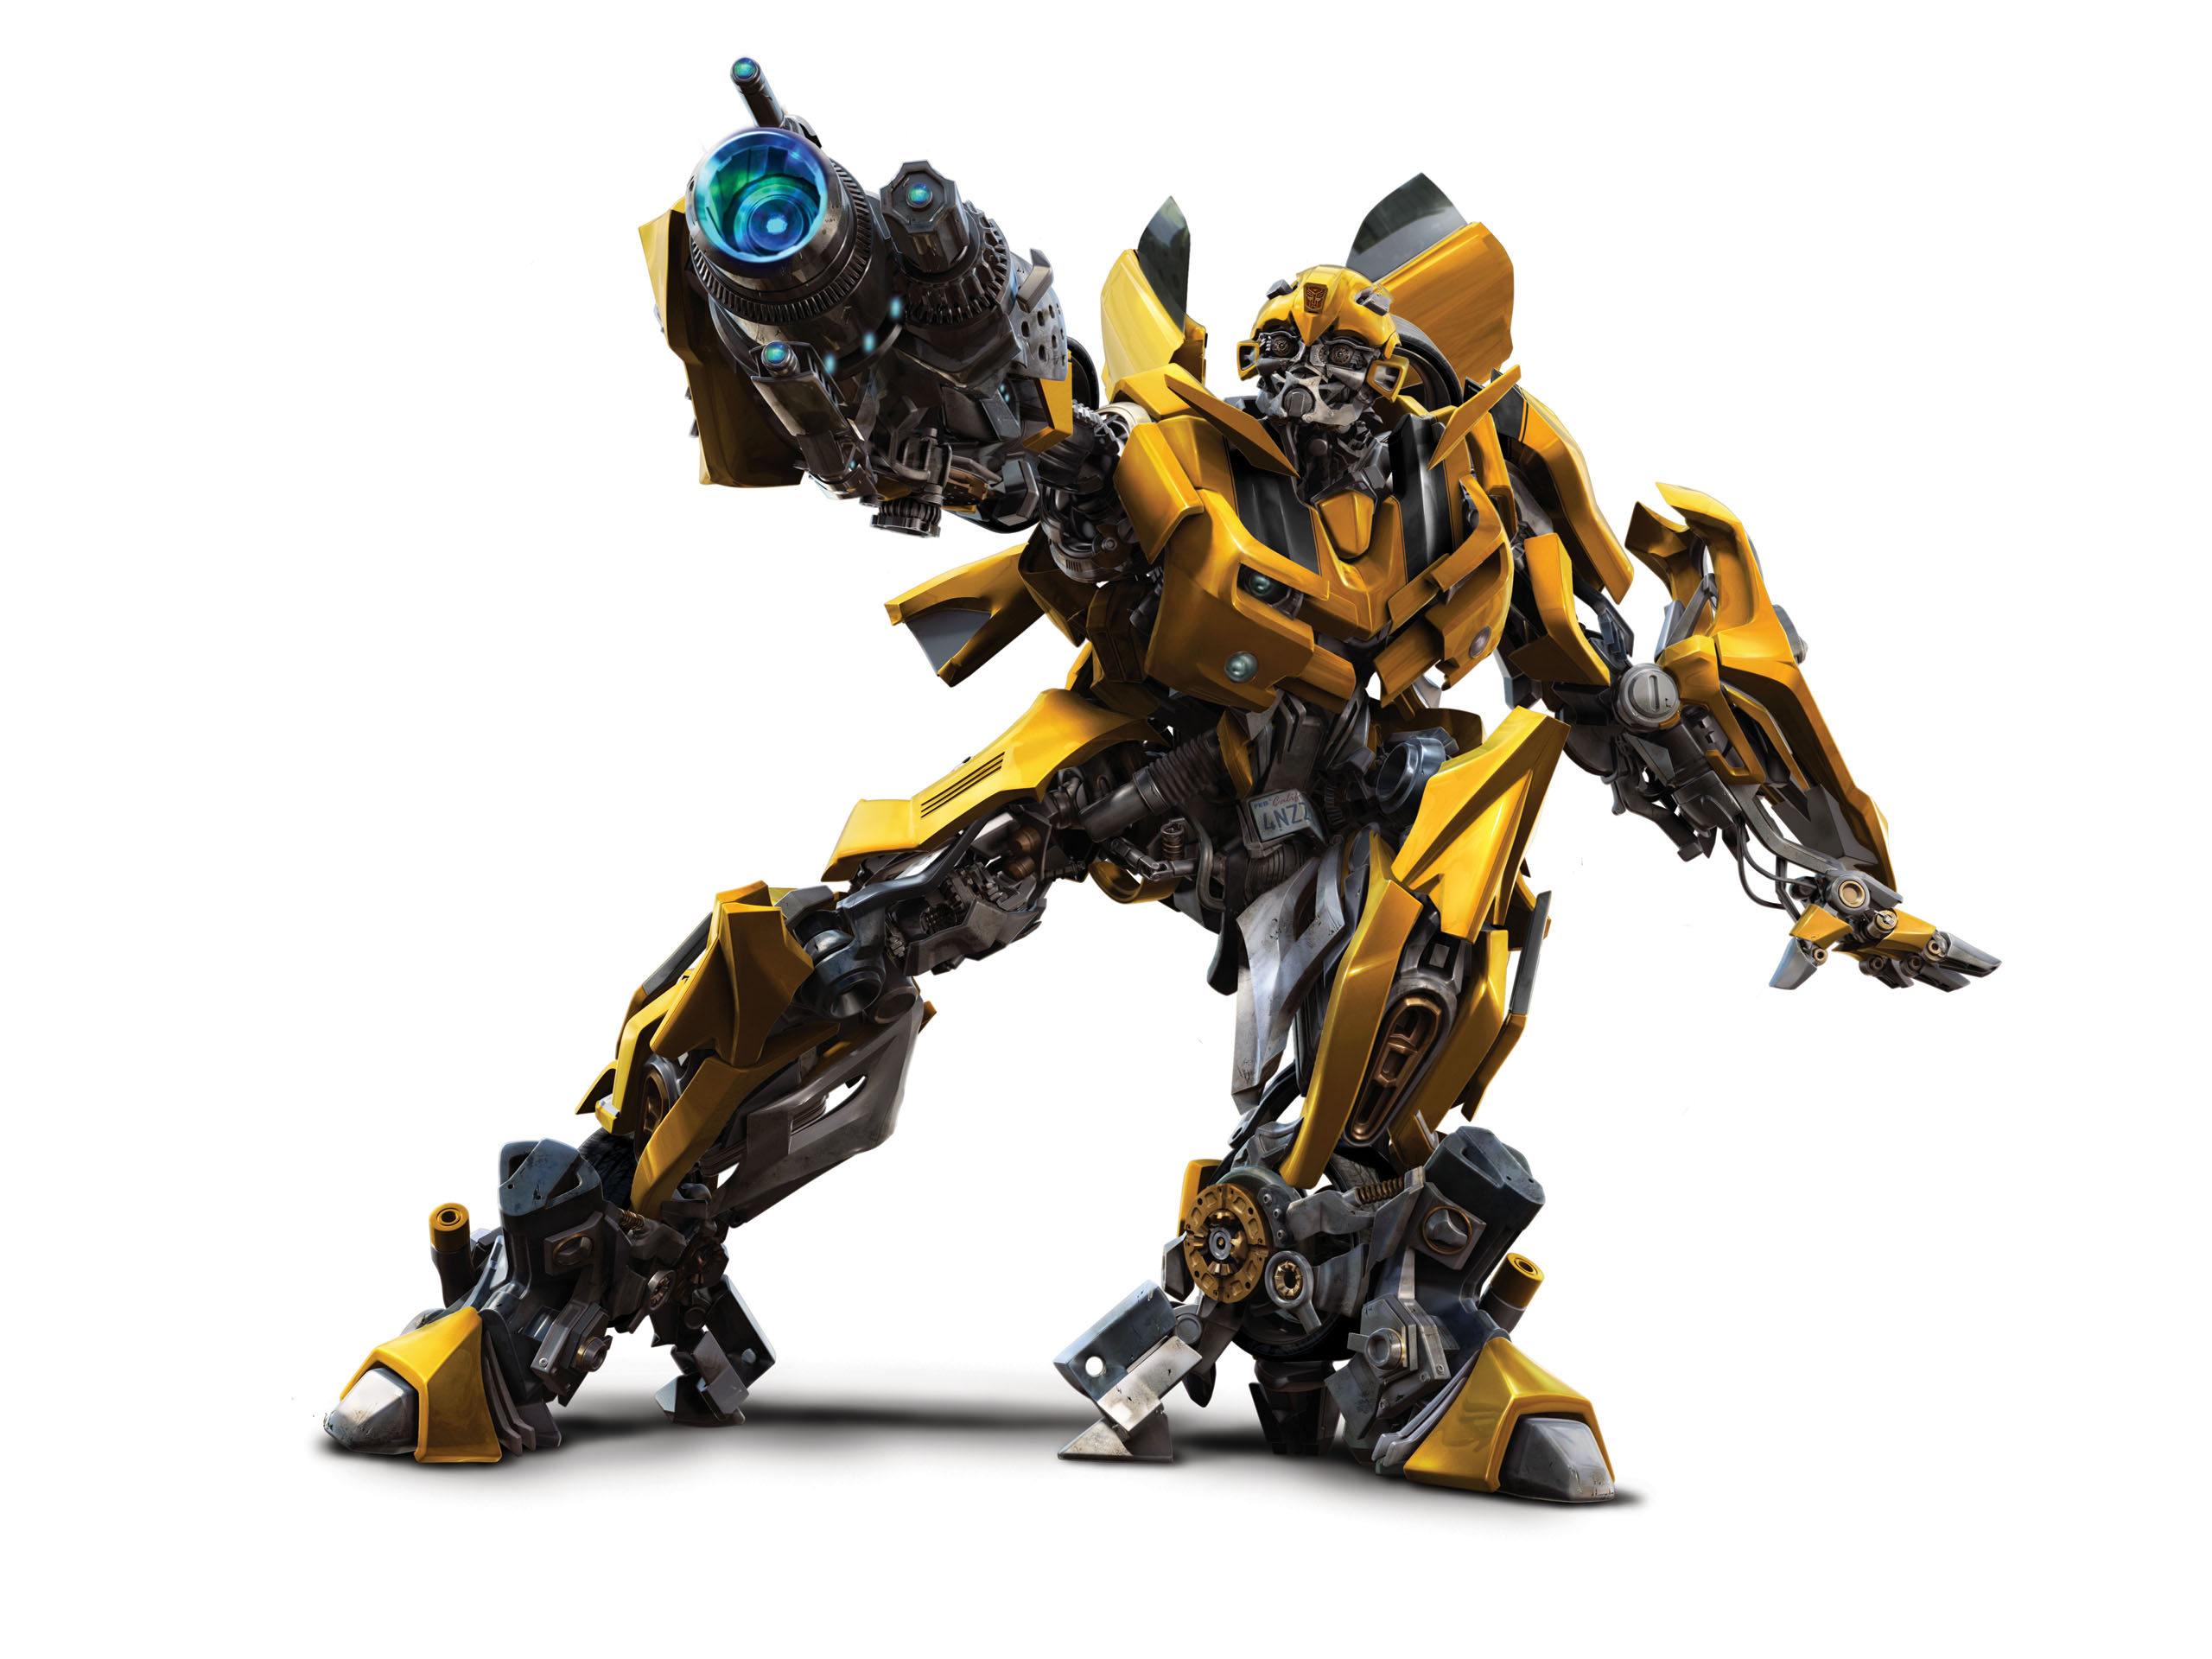 Transformers Bumble Bee   Wallpaper Pin it 2560x1920